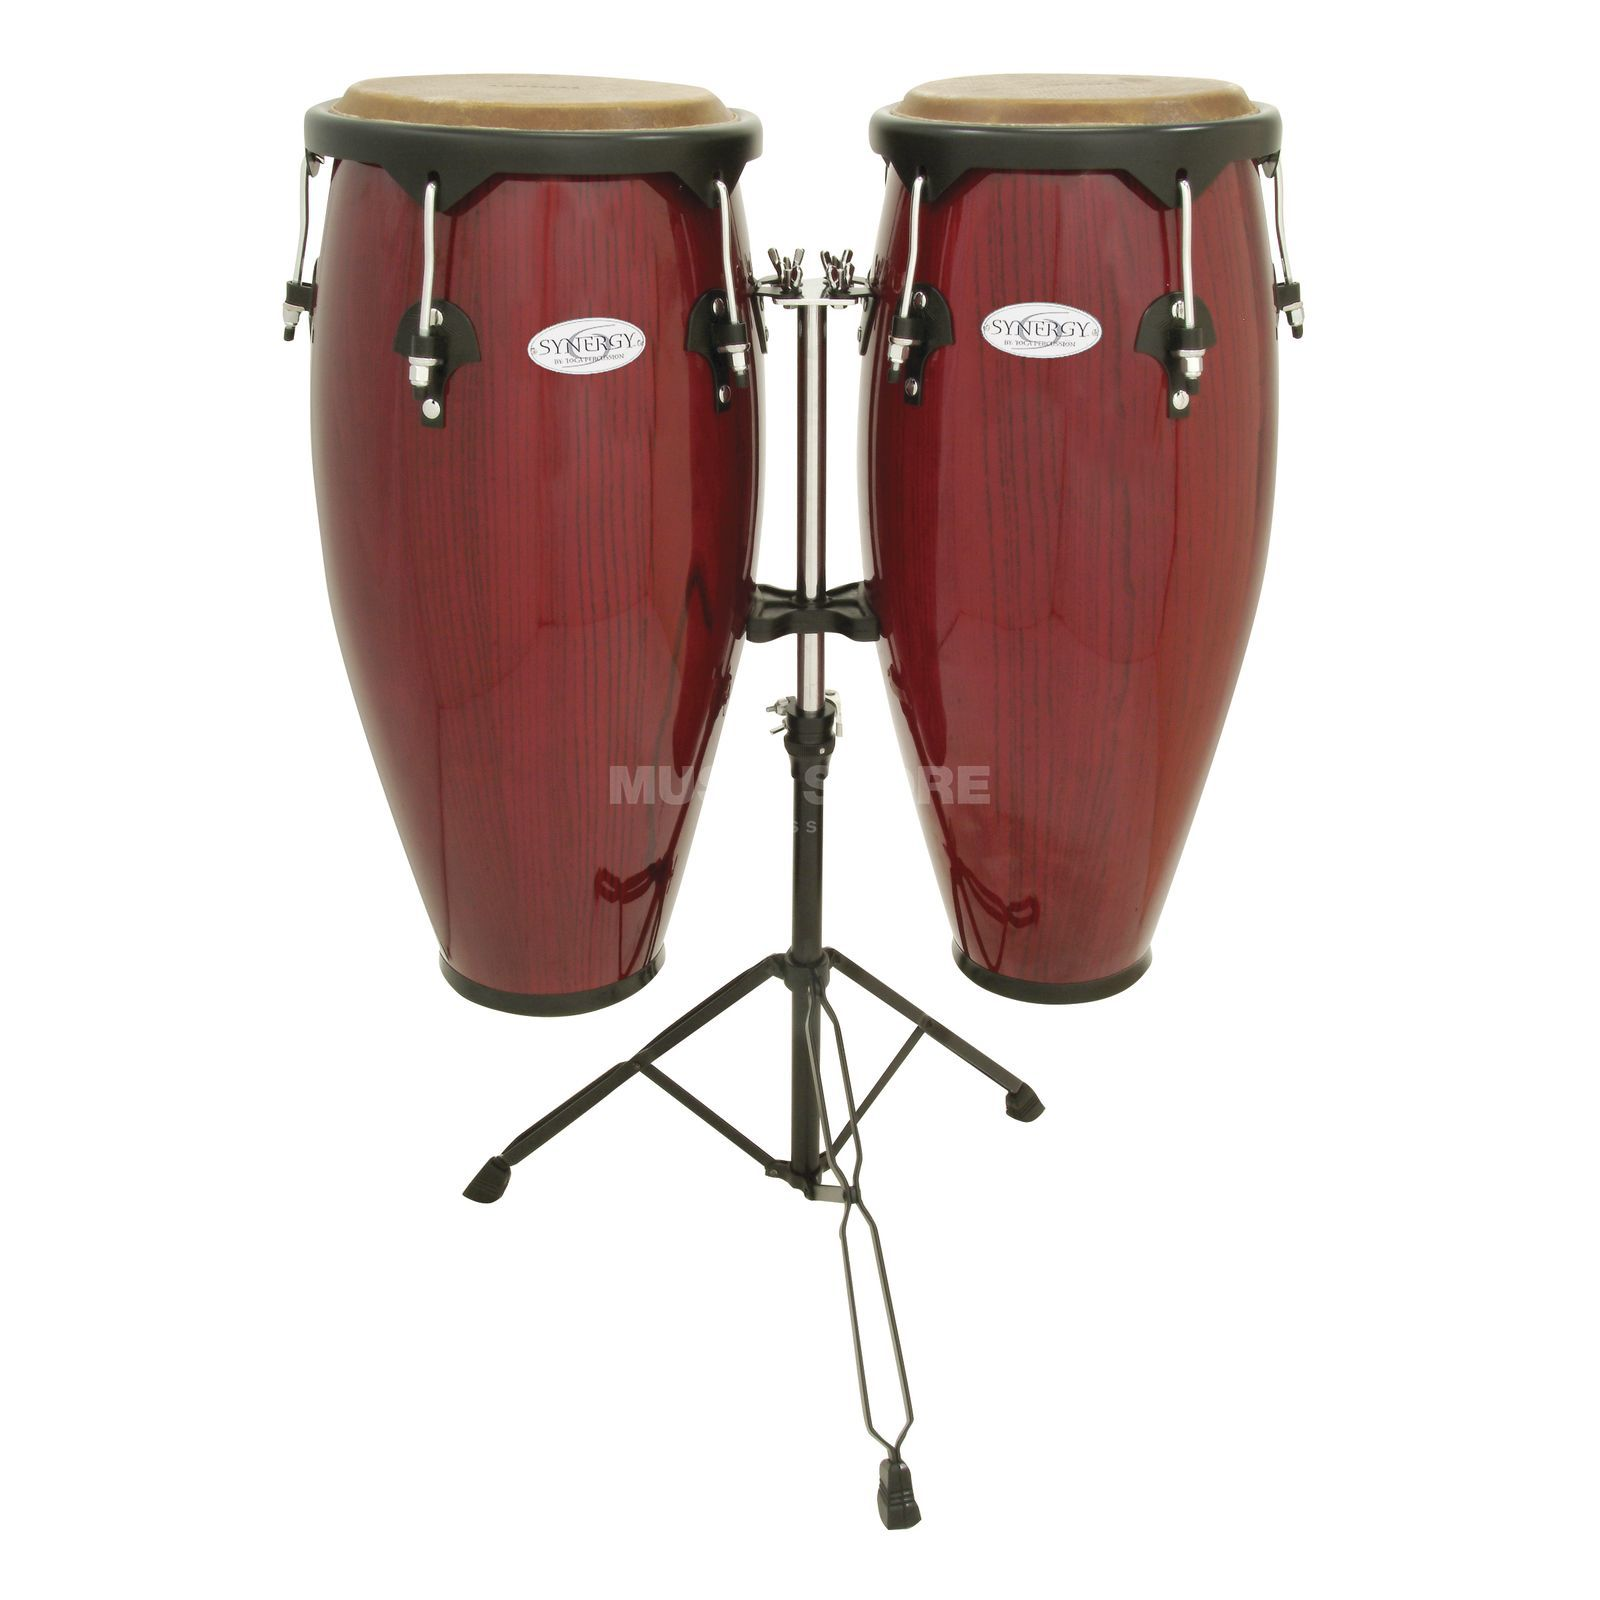 "Toca Percussion Synergy CongaSet 2300RR, 10"" & 11"", Rio Red Produktbild"